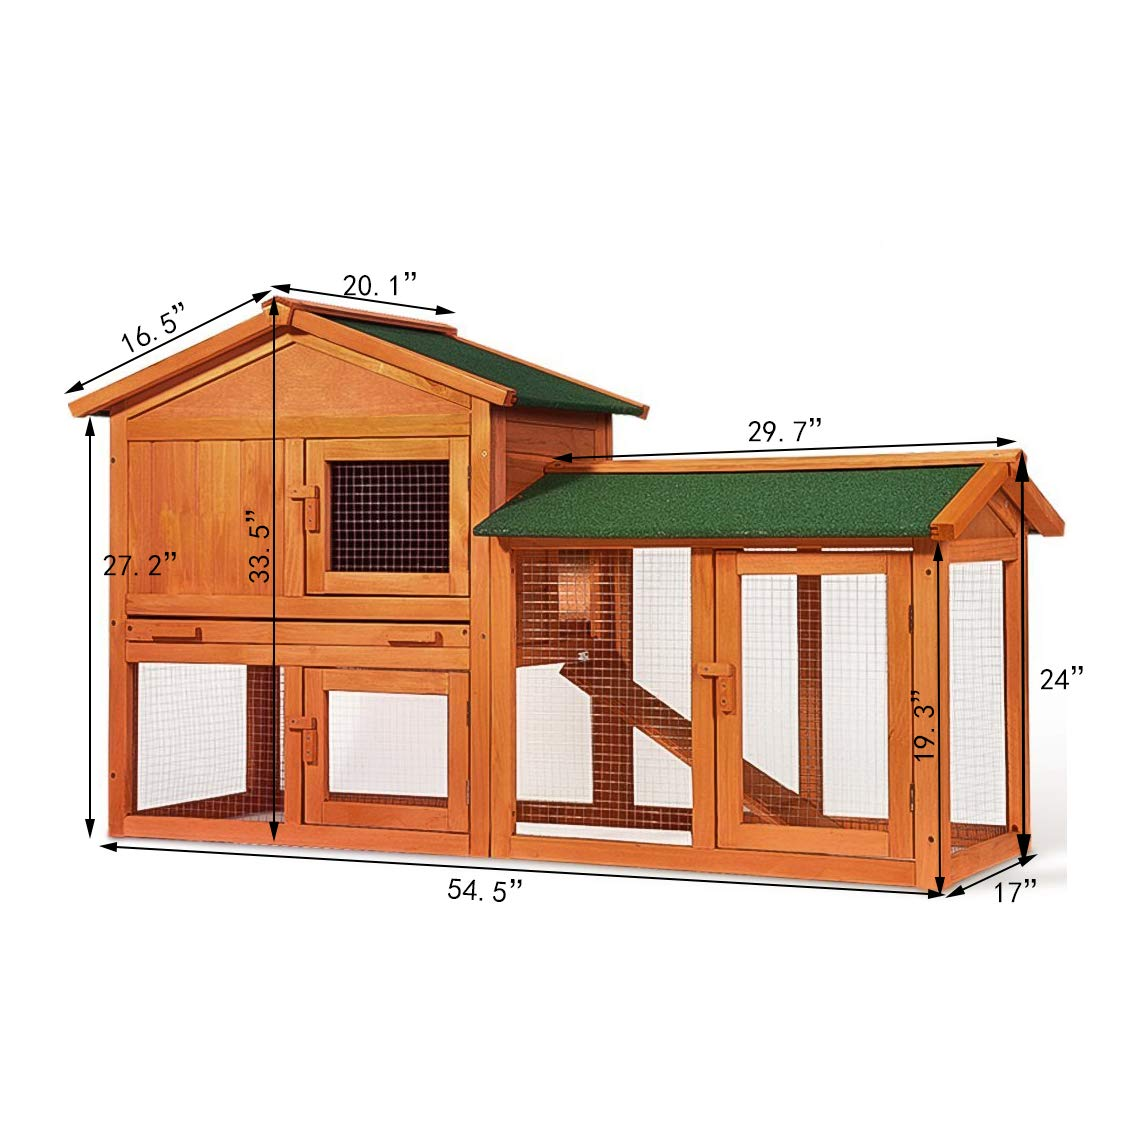 P PURLOVE Wood Bunny Hutch 54'' Large 2 Story Outdoor Bunny House with Removable Tray & Ramp, Backyard Garden Rabbit Cage/Guinea Pig House/Chicken Coop Nesting Box for Small Animals by P PURLOVE (Image #5)